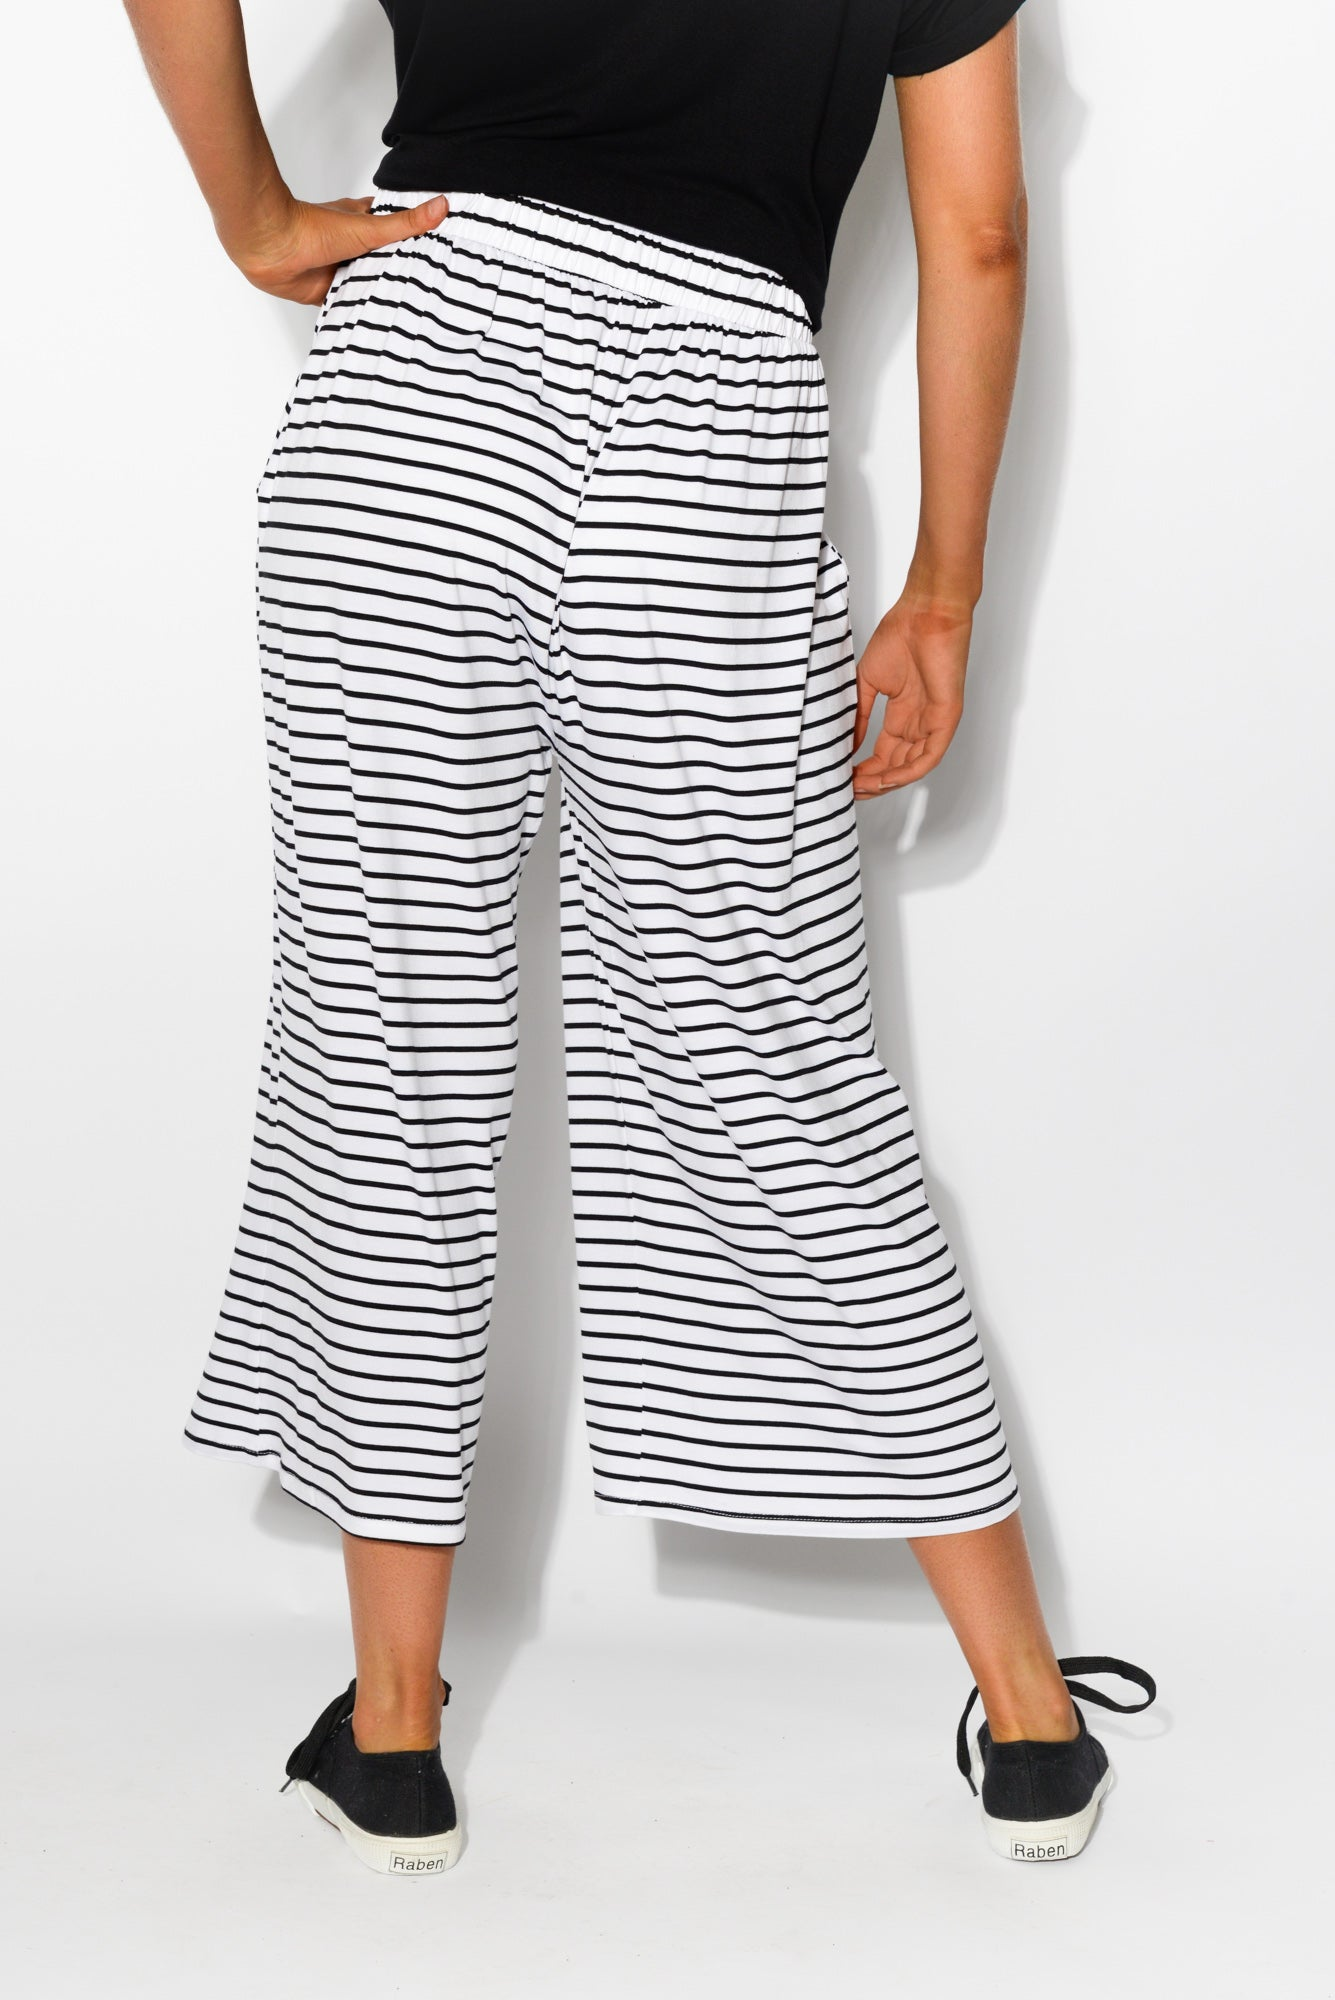 Dublin Black Stripe Cropped Pant